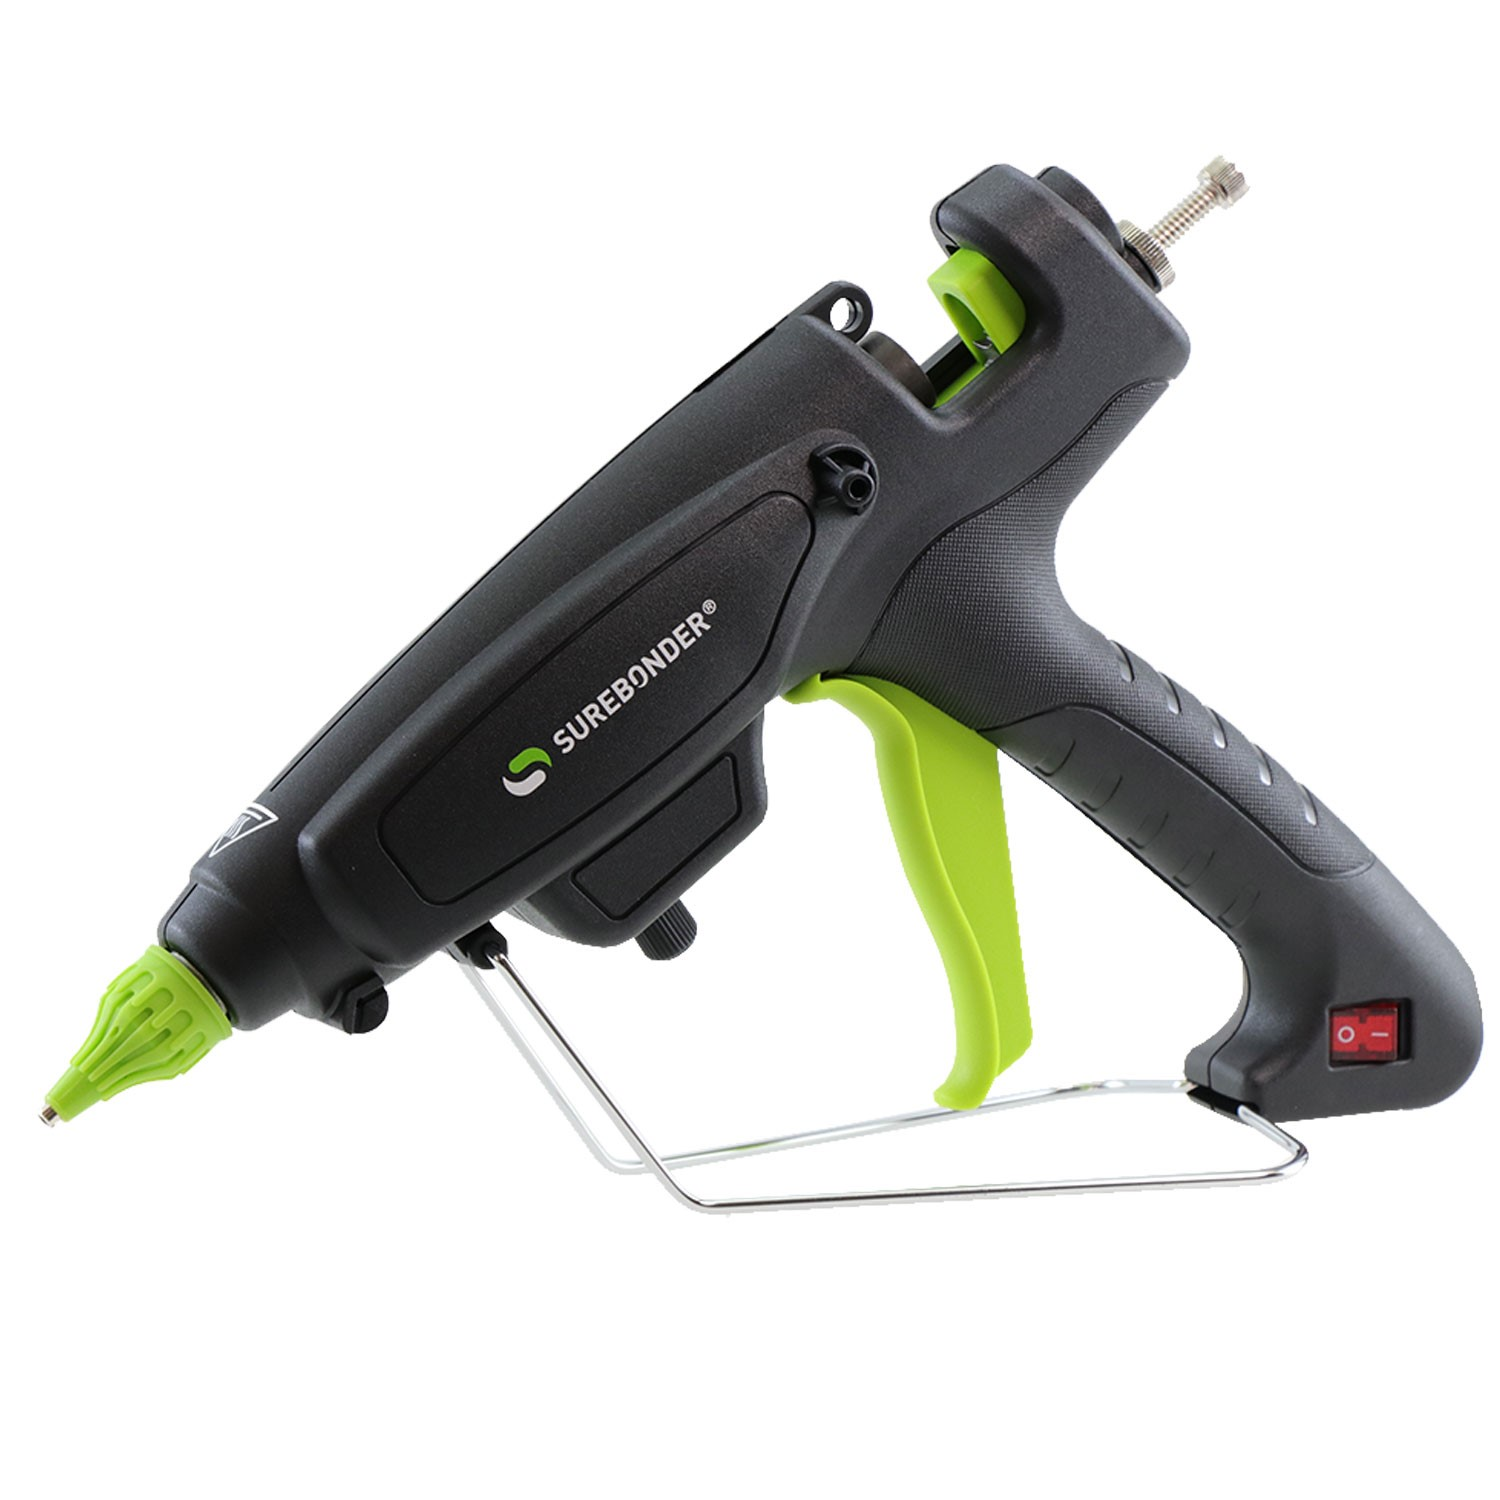 PRO2-220HT-3 Surebonder Professional Heavy Duty High Temperature  220 Watt 7/16 Glue Gun - 3 Tool Pack